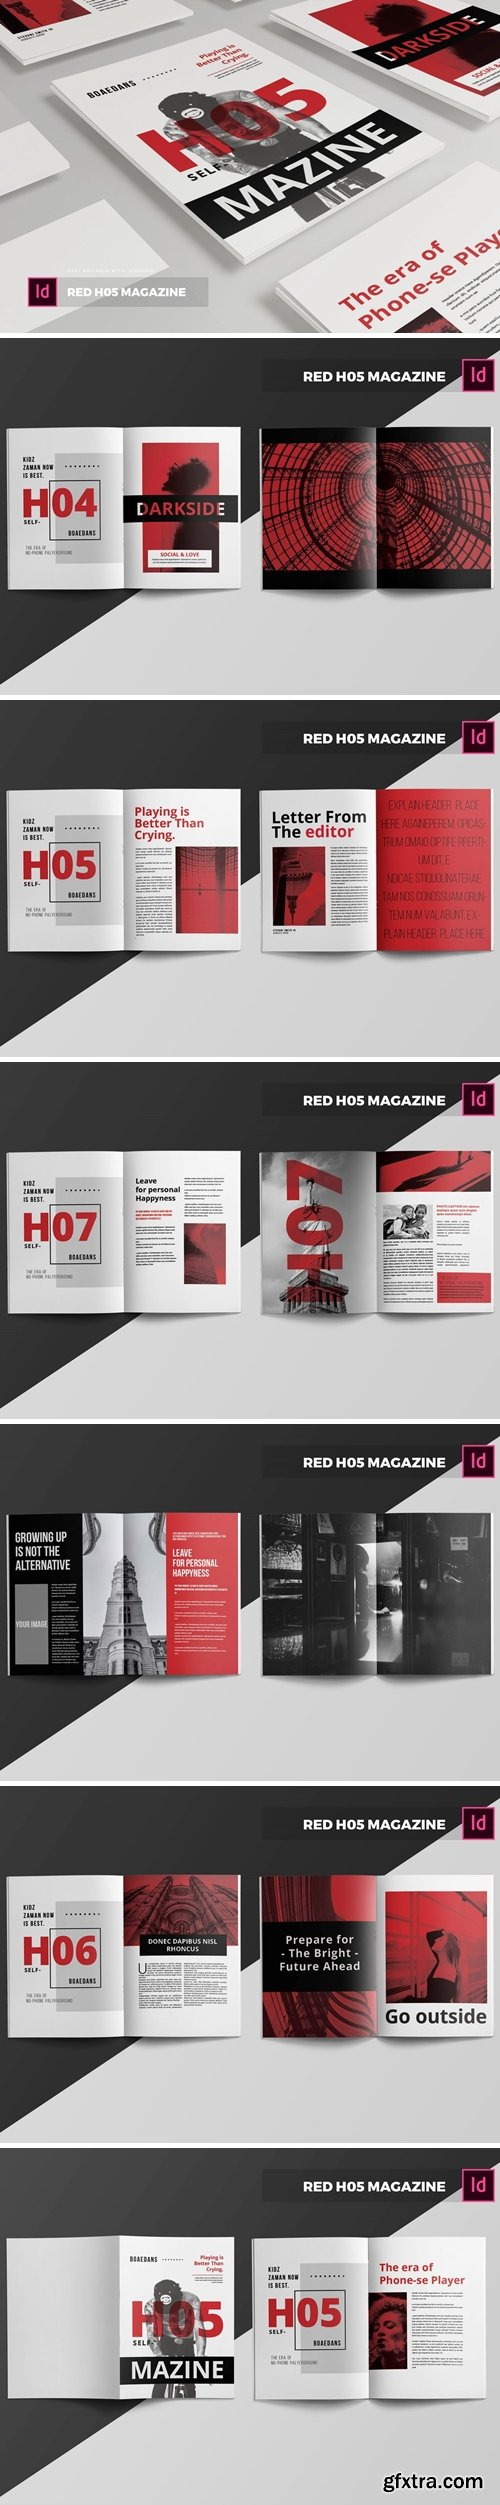 Red H05   Magazine Template